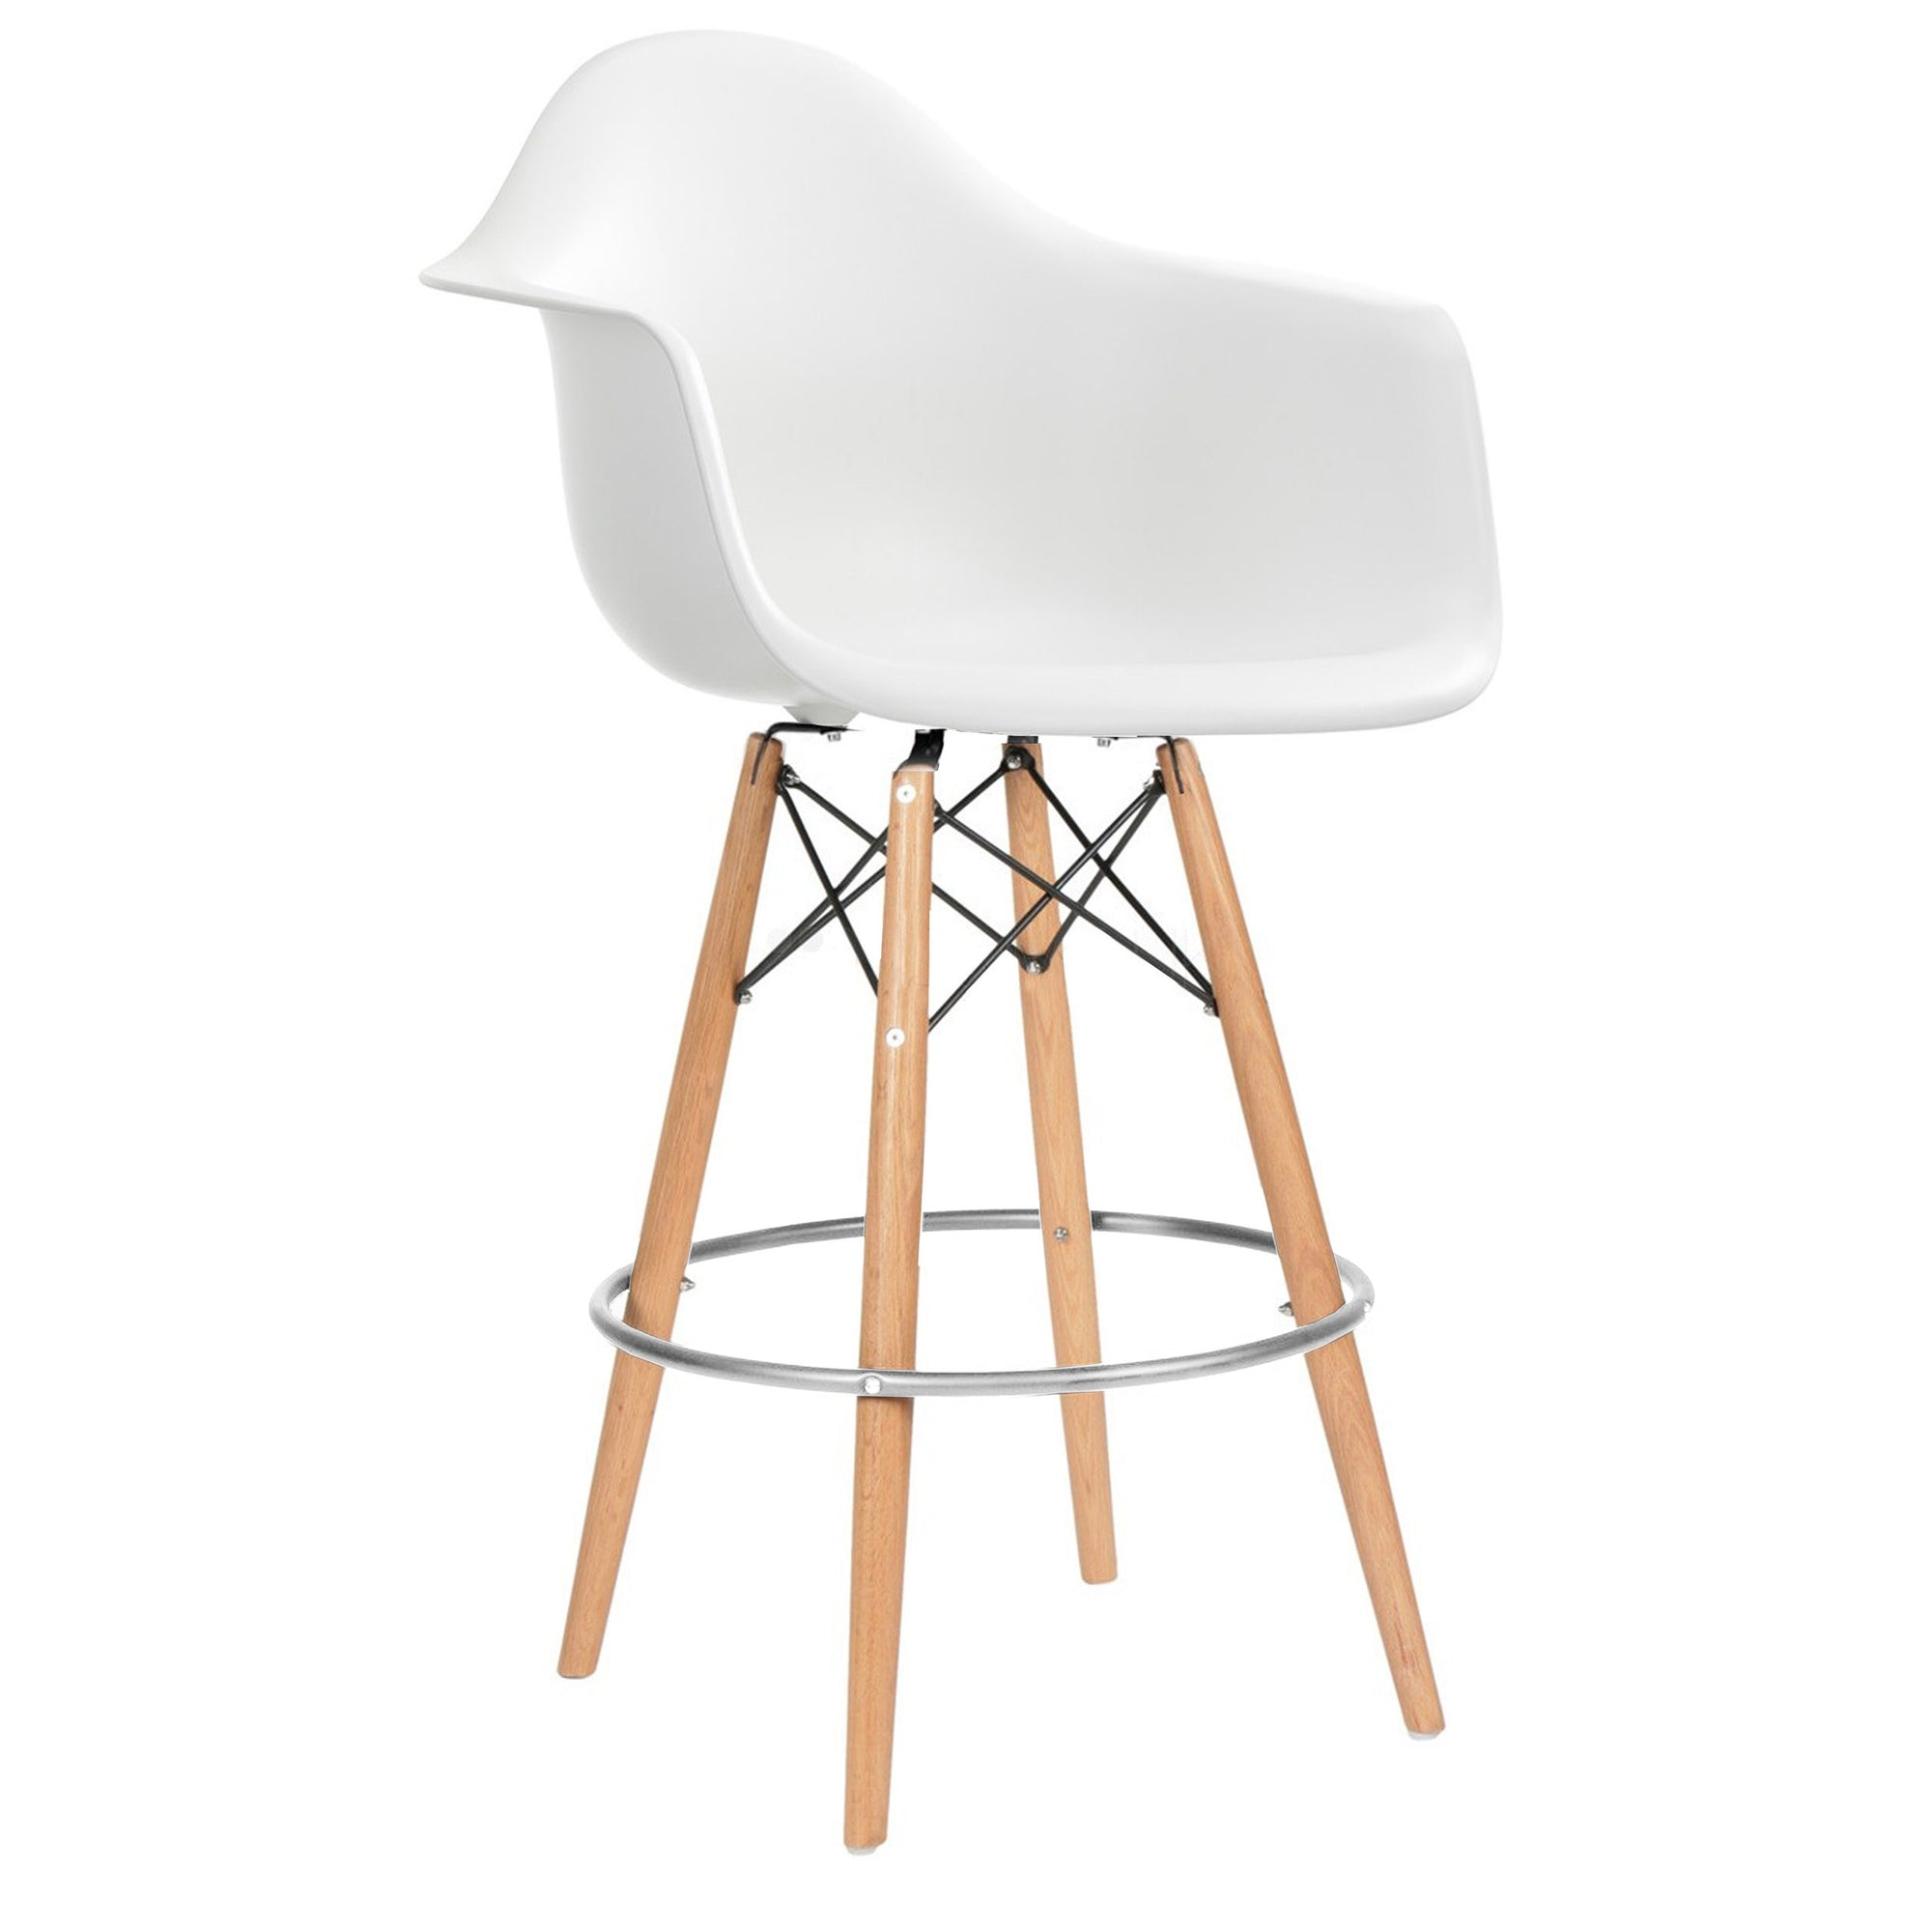 BarChair-Plastic MSB0011 -  كرسي بلاستيك - Shop Online Furniture and Home Decor Store in Dubai, UAE at ebarza